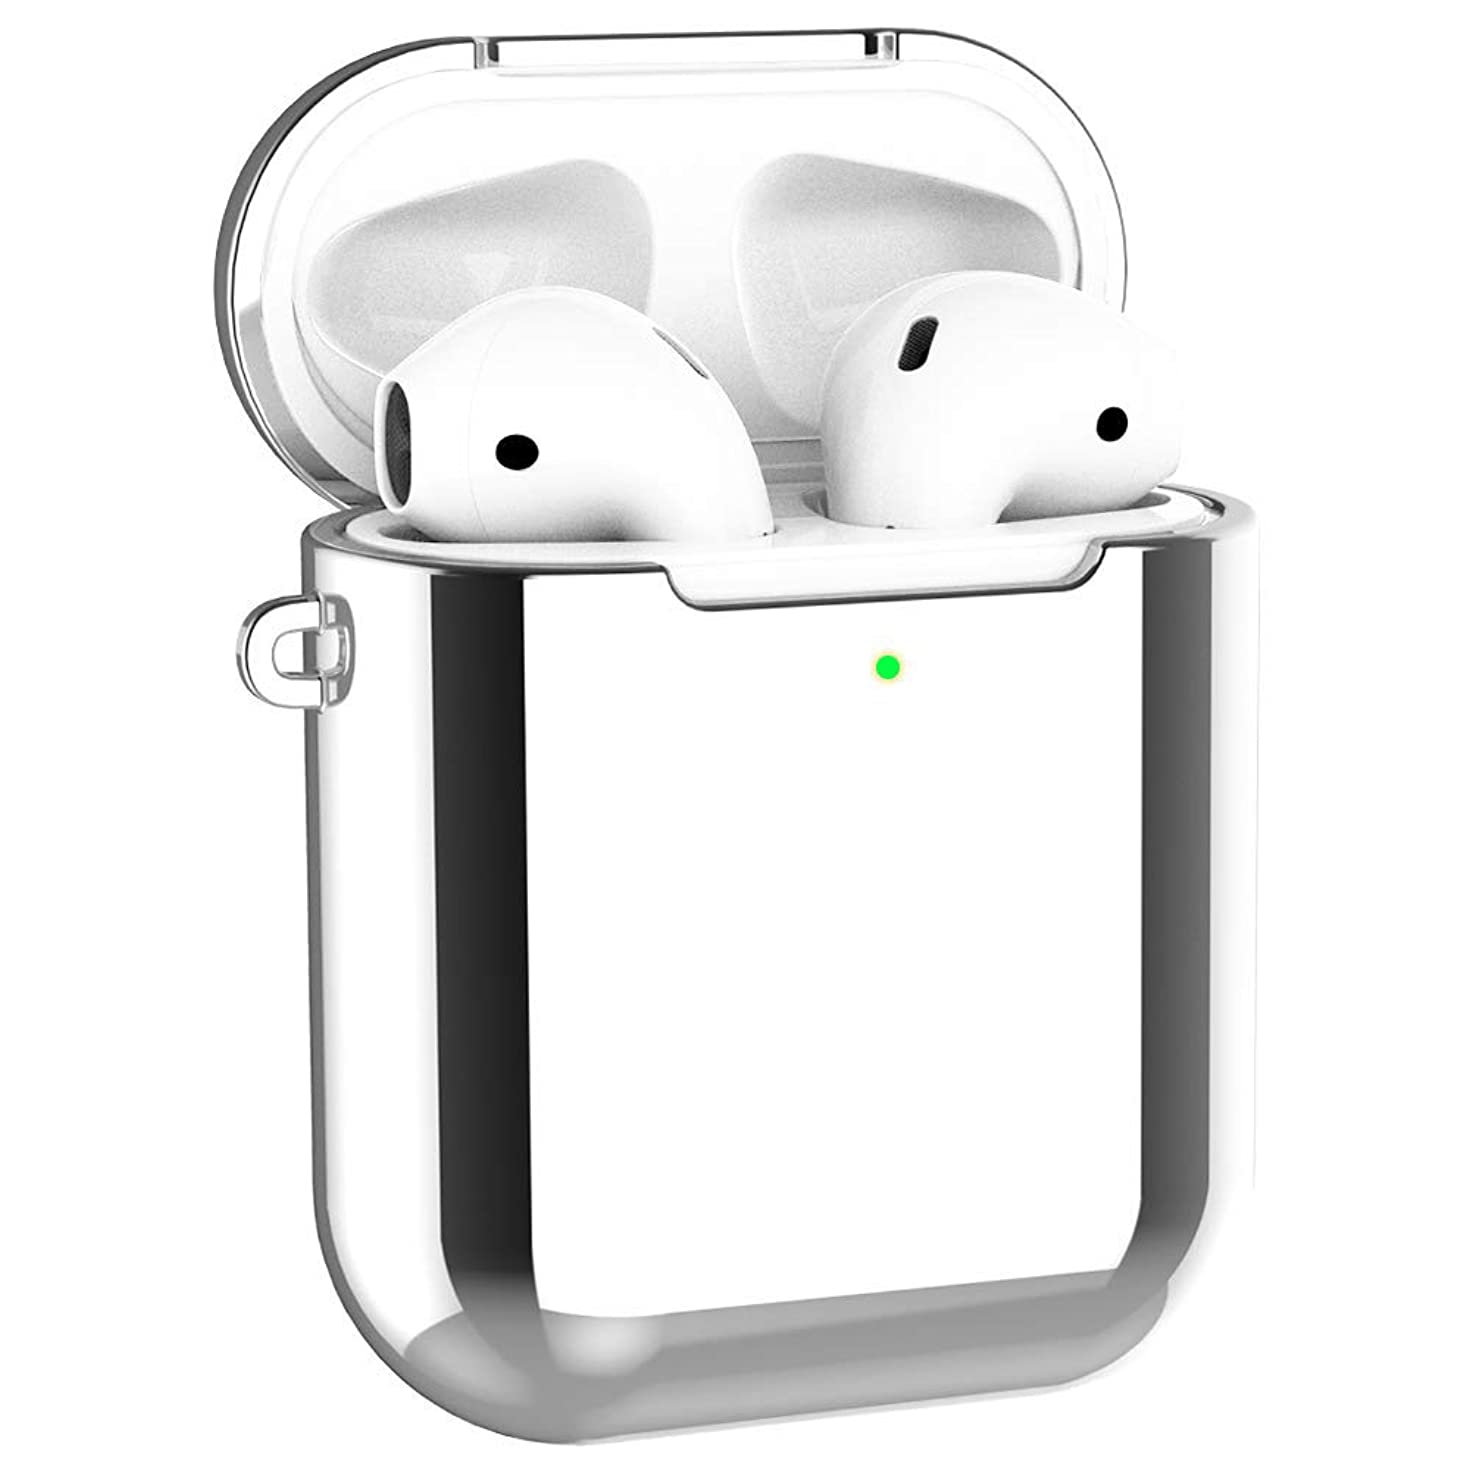 Alritz Case for AirPods 1 & 2, Plating TPU Protective Case Shockproof Cover Skin for Apple AirPods 1 & 2 Charging Case [Front LED Visible] [Support Wireless Charging], Silver